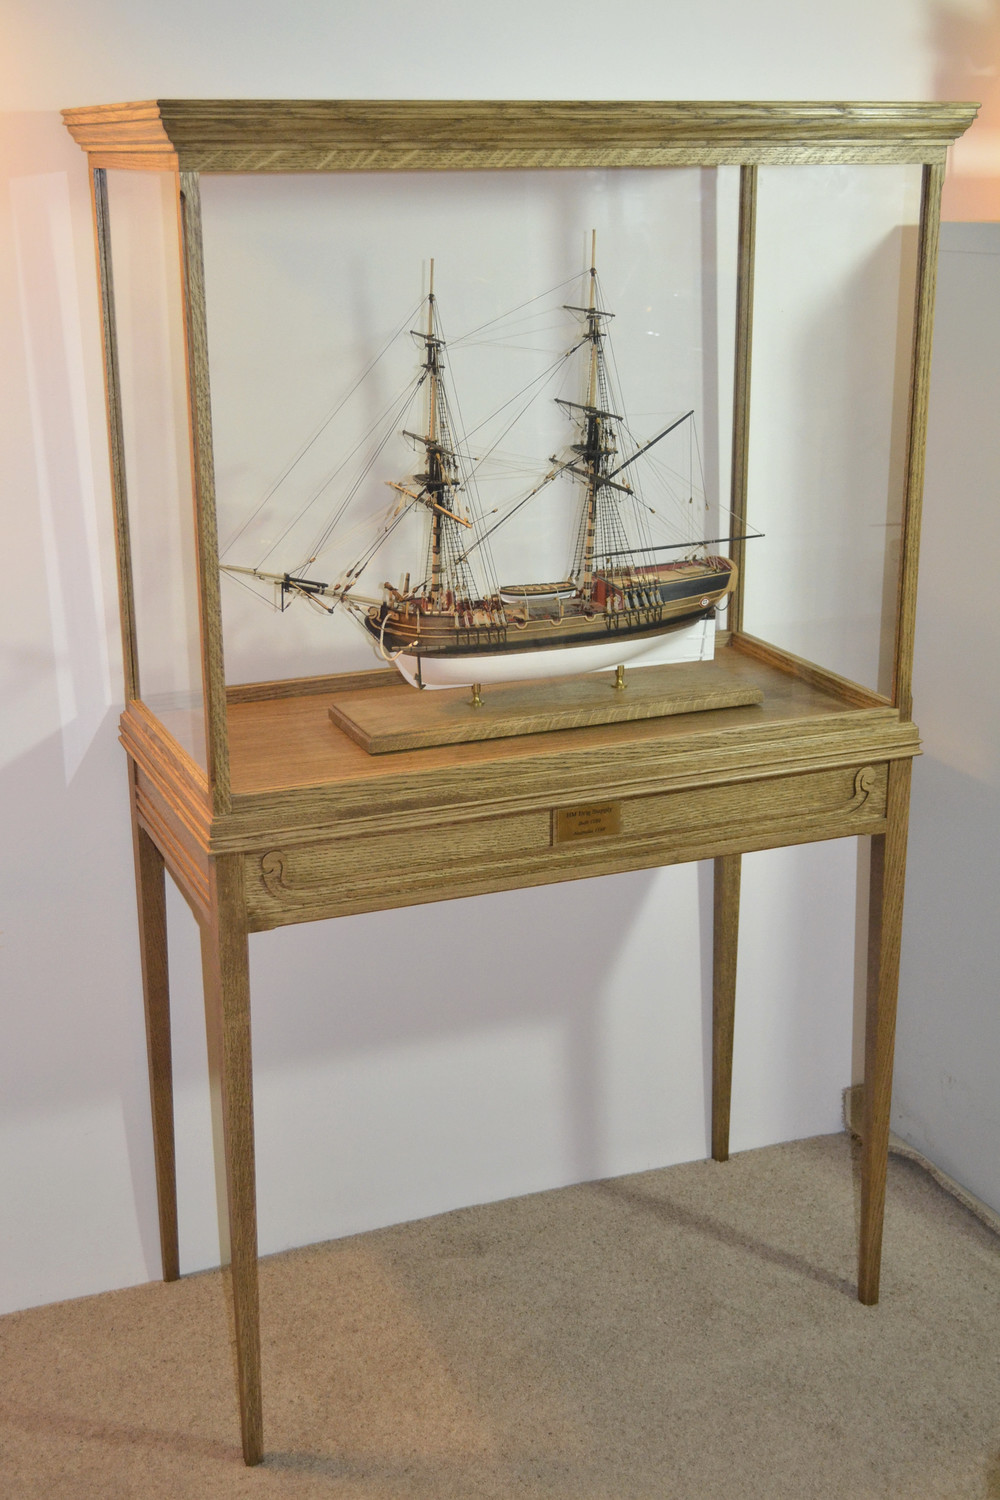 Ship display case & table